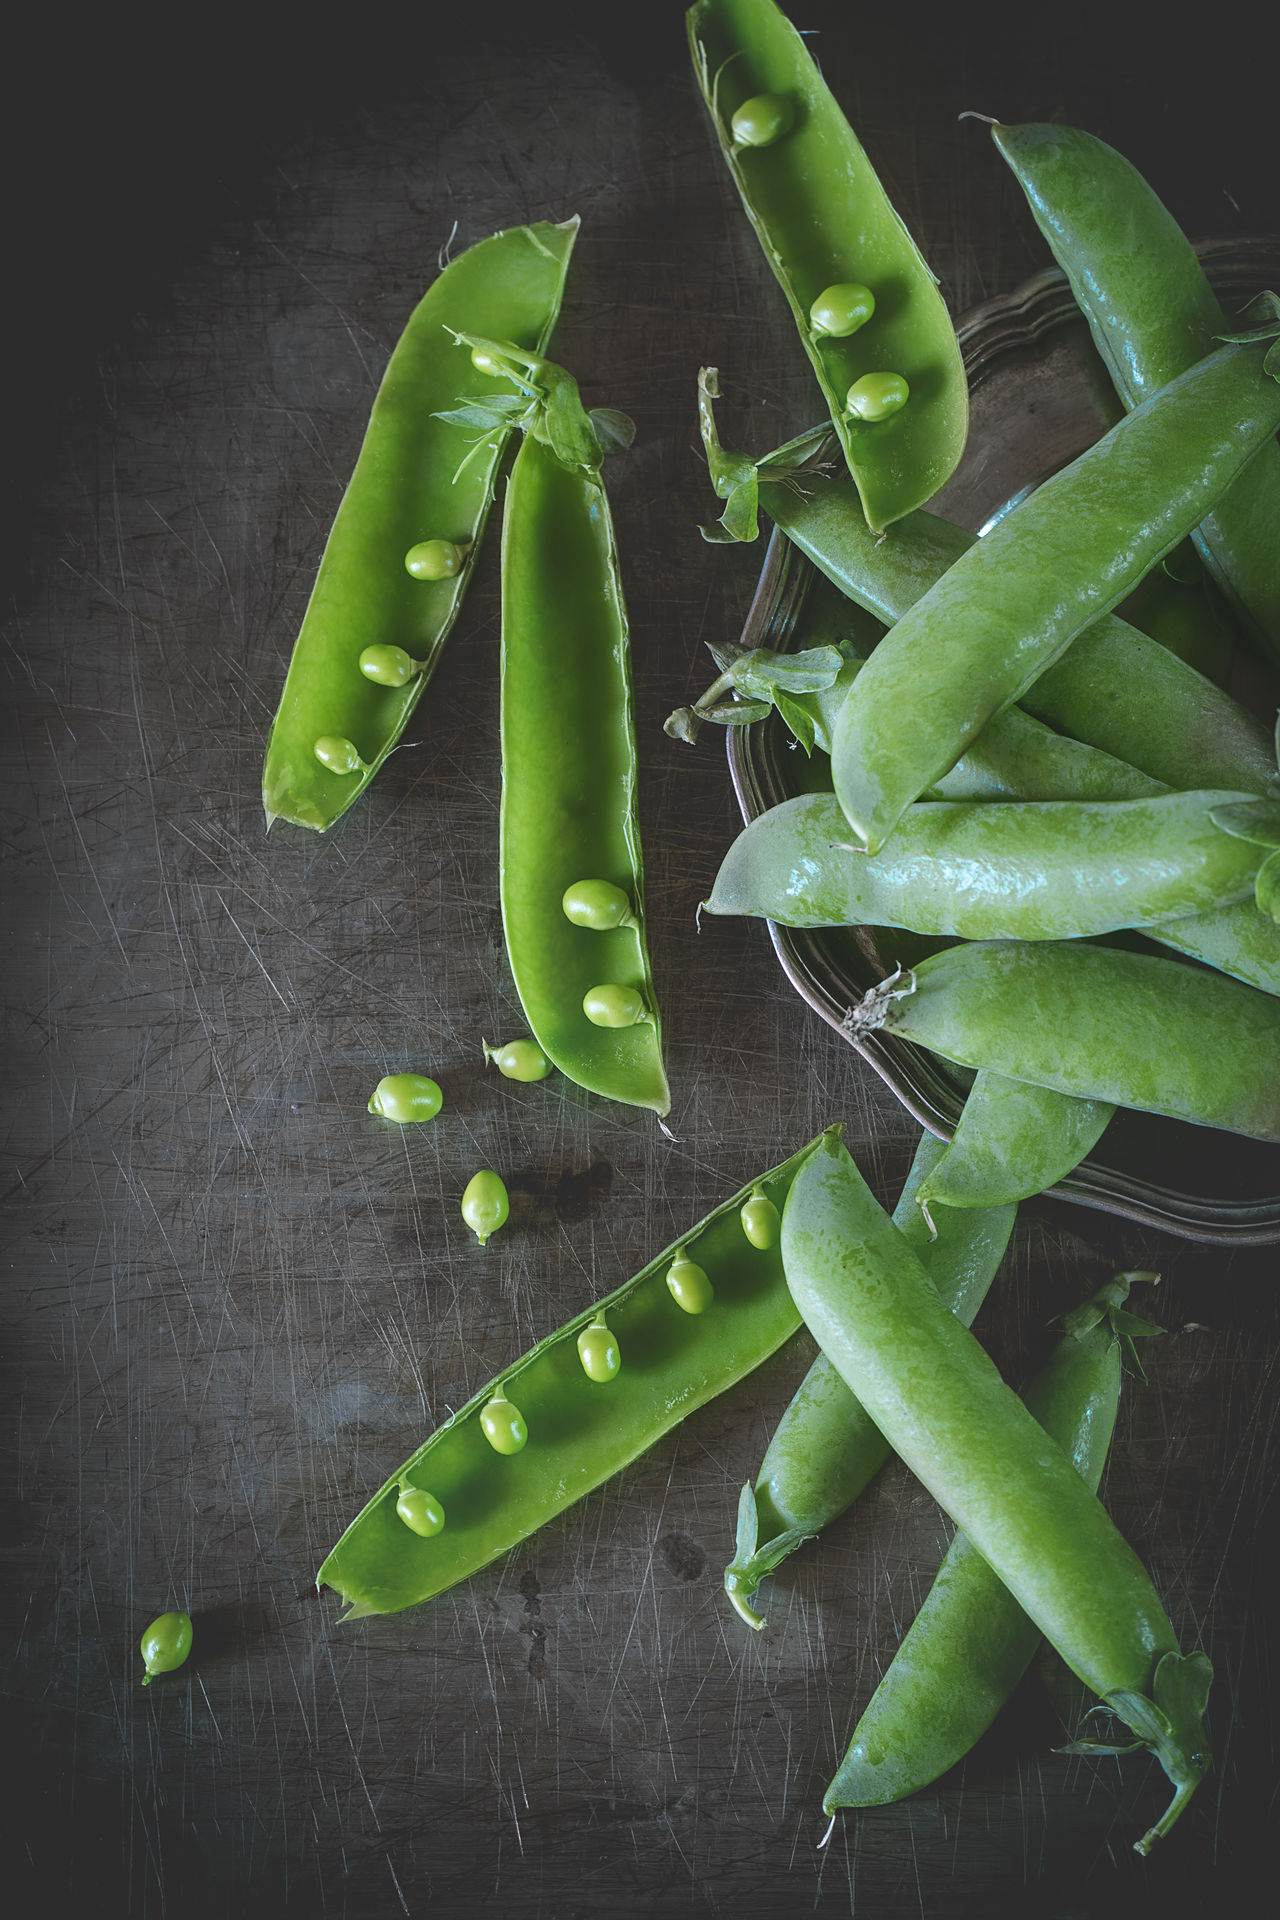 Heap of young green peas whole and broken over old metal surface. Rustic style. Natural day light. Top view Country Dark OpenEdit Rustic Sweet Pea Day Light Food Food And Drink Fresh Green Color Green Pea Healthy Eating Ingredient Metal Space For Text Top View Vegetable